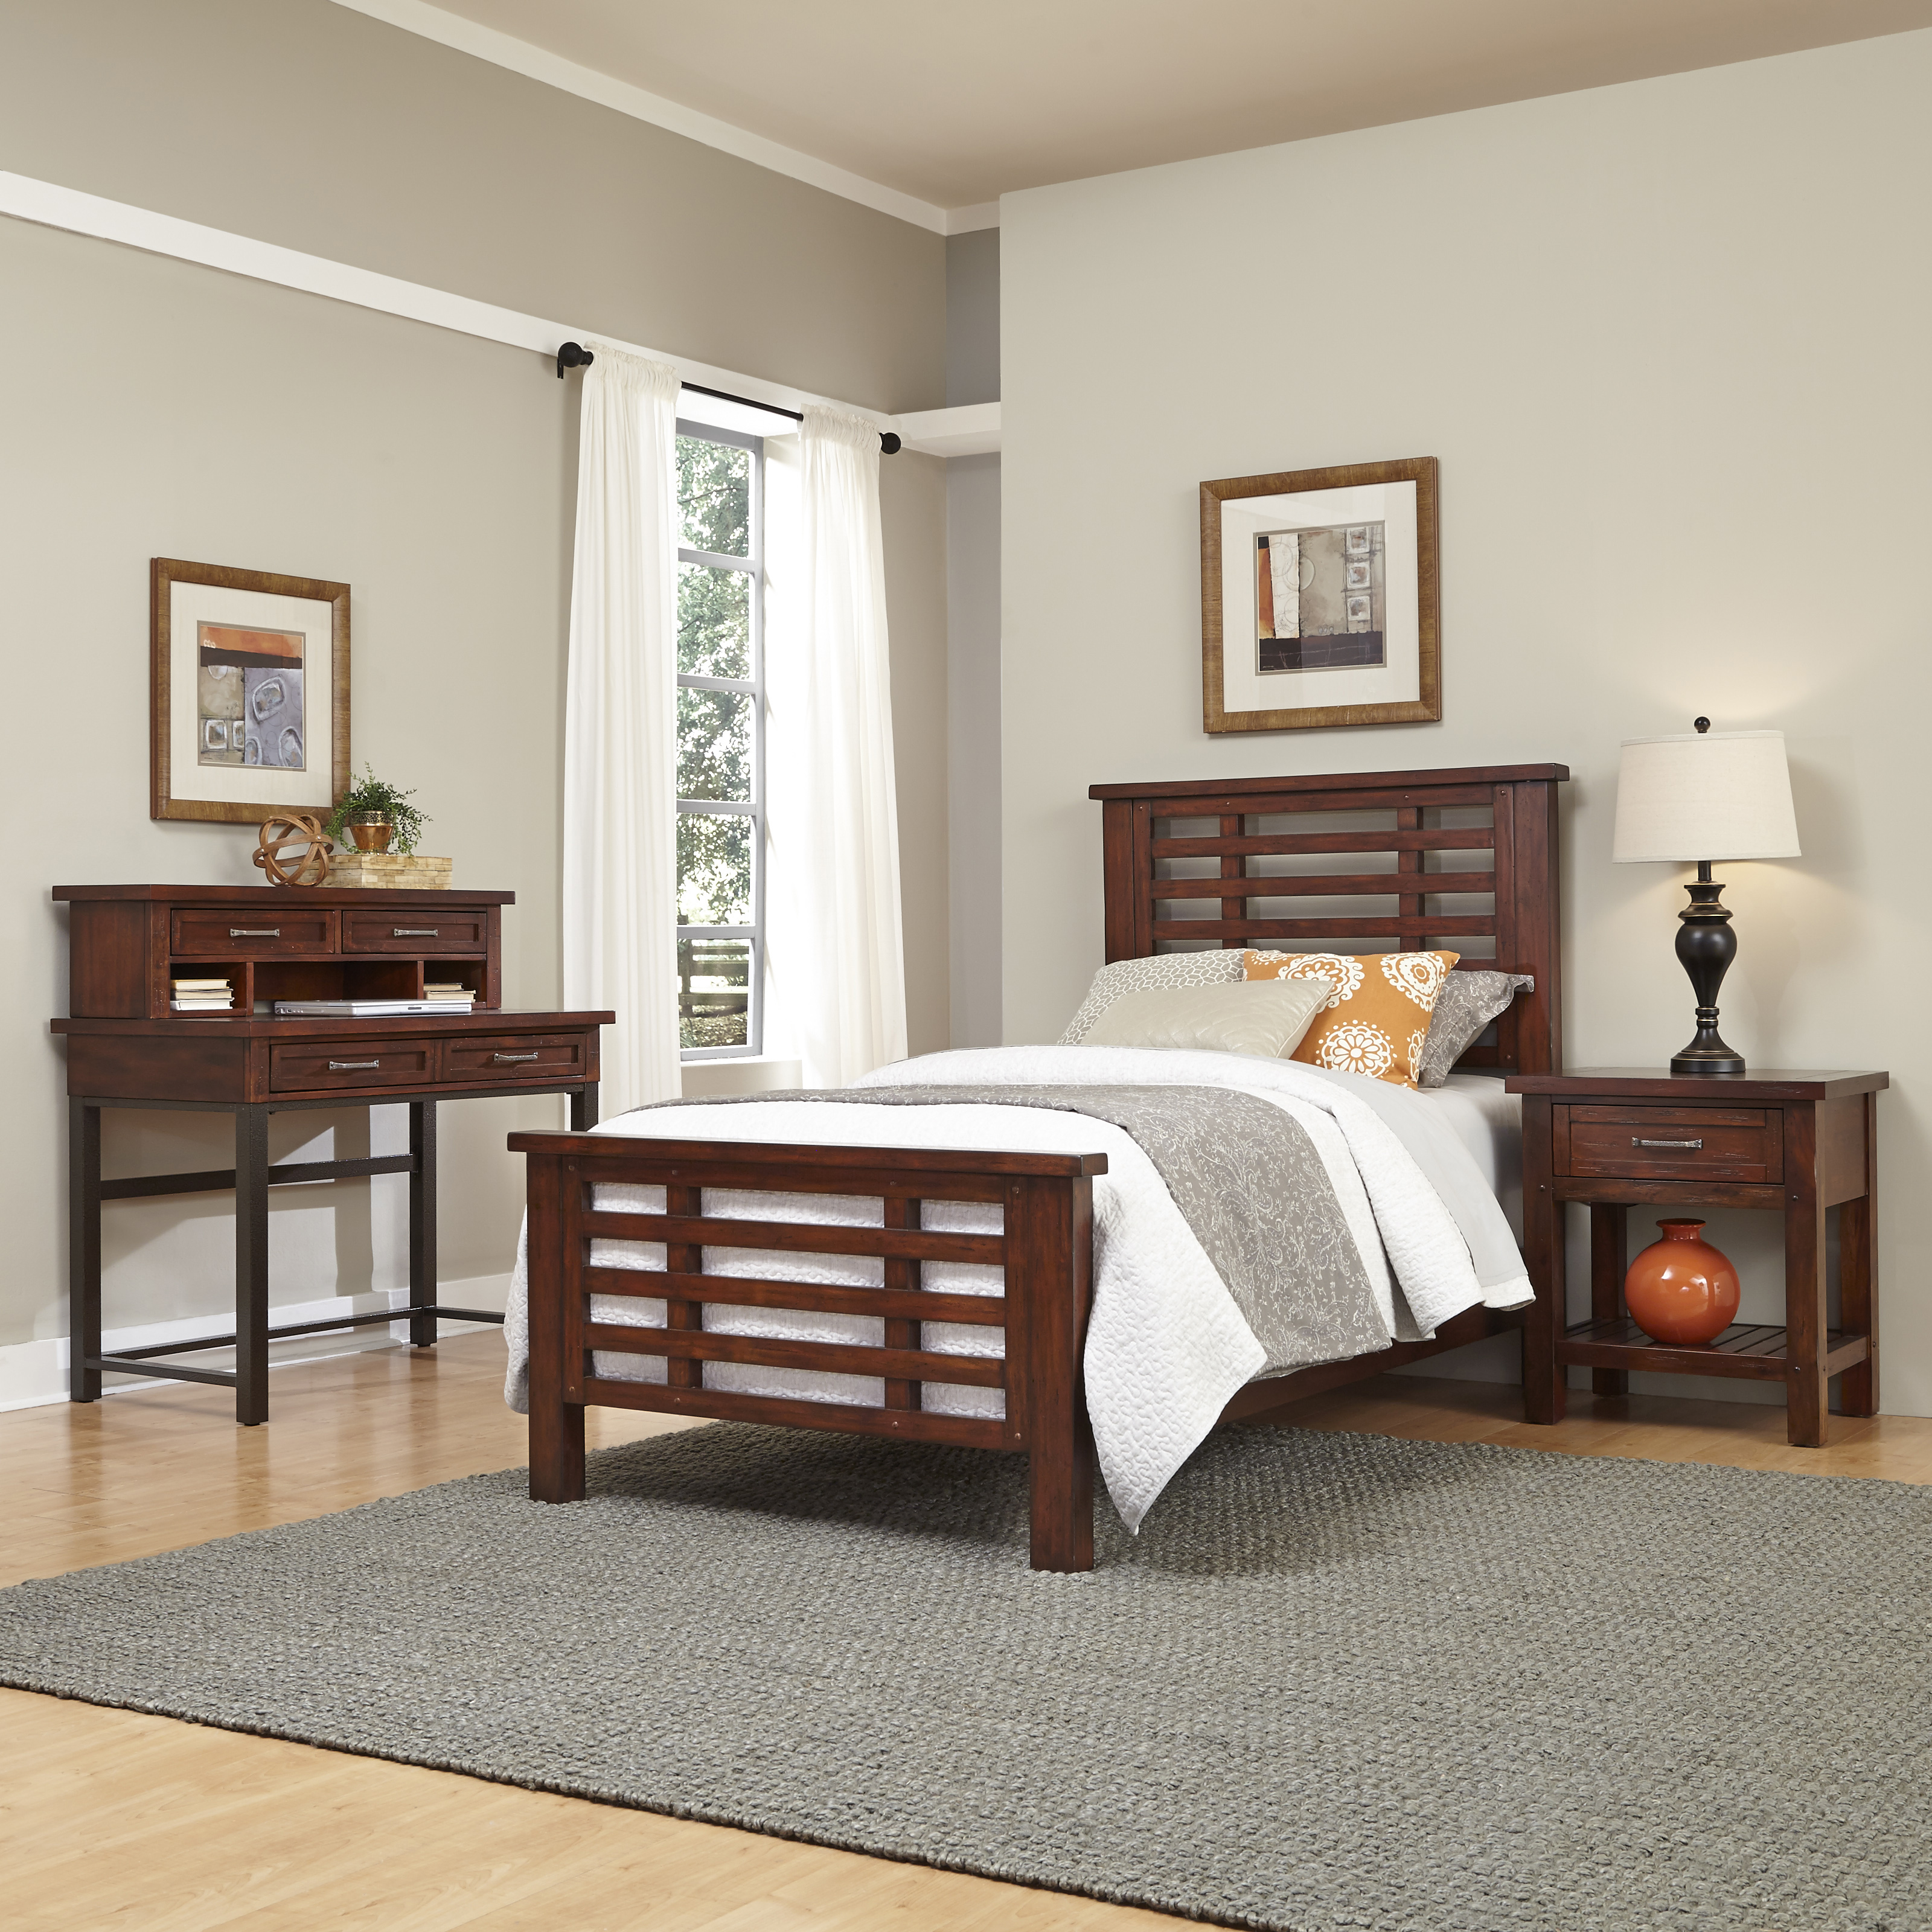 Home Styles Cabin Creek Twin Bed Night Stand and Student ...